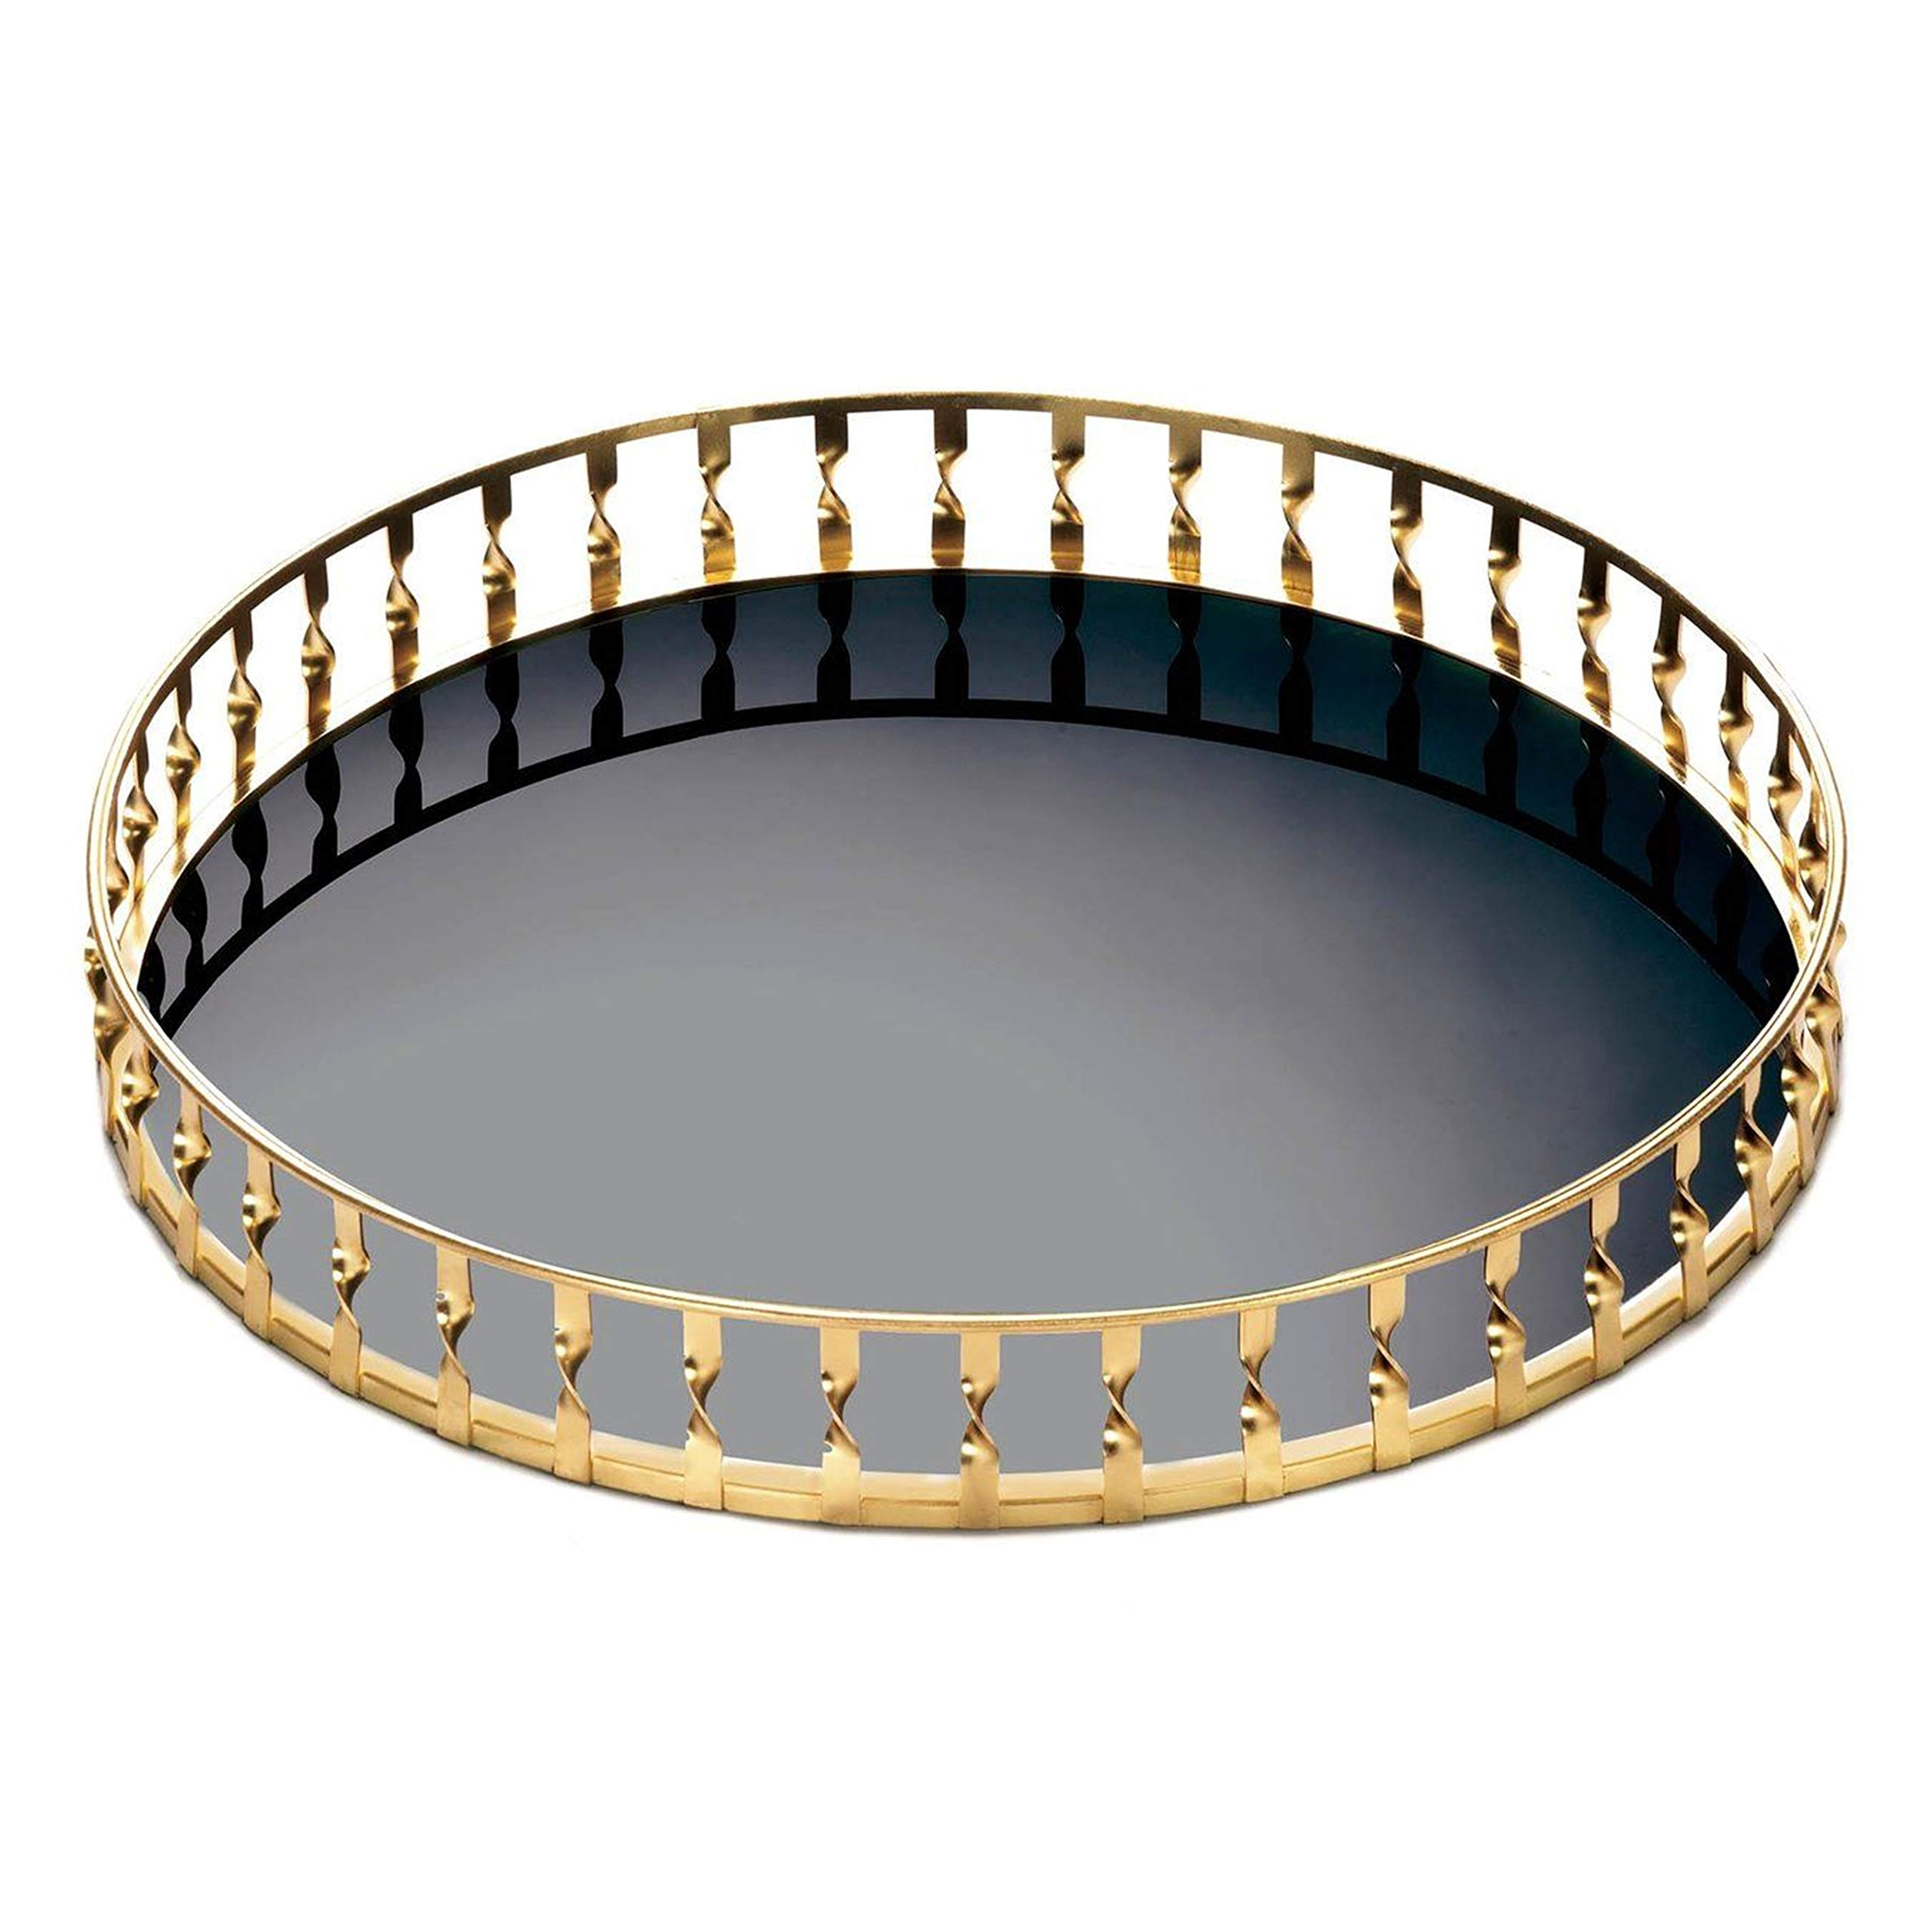 Aspen Tree Round Glass Tray Black Glass Metal Vanity Trays | Bar Trays for Liquor Display | Organizer Decorative Vanity Trays | Home Table Top Modern Accent